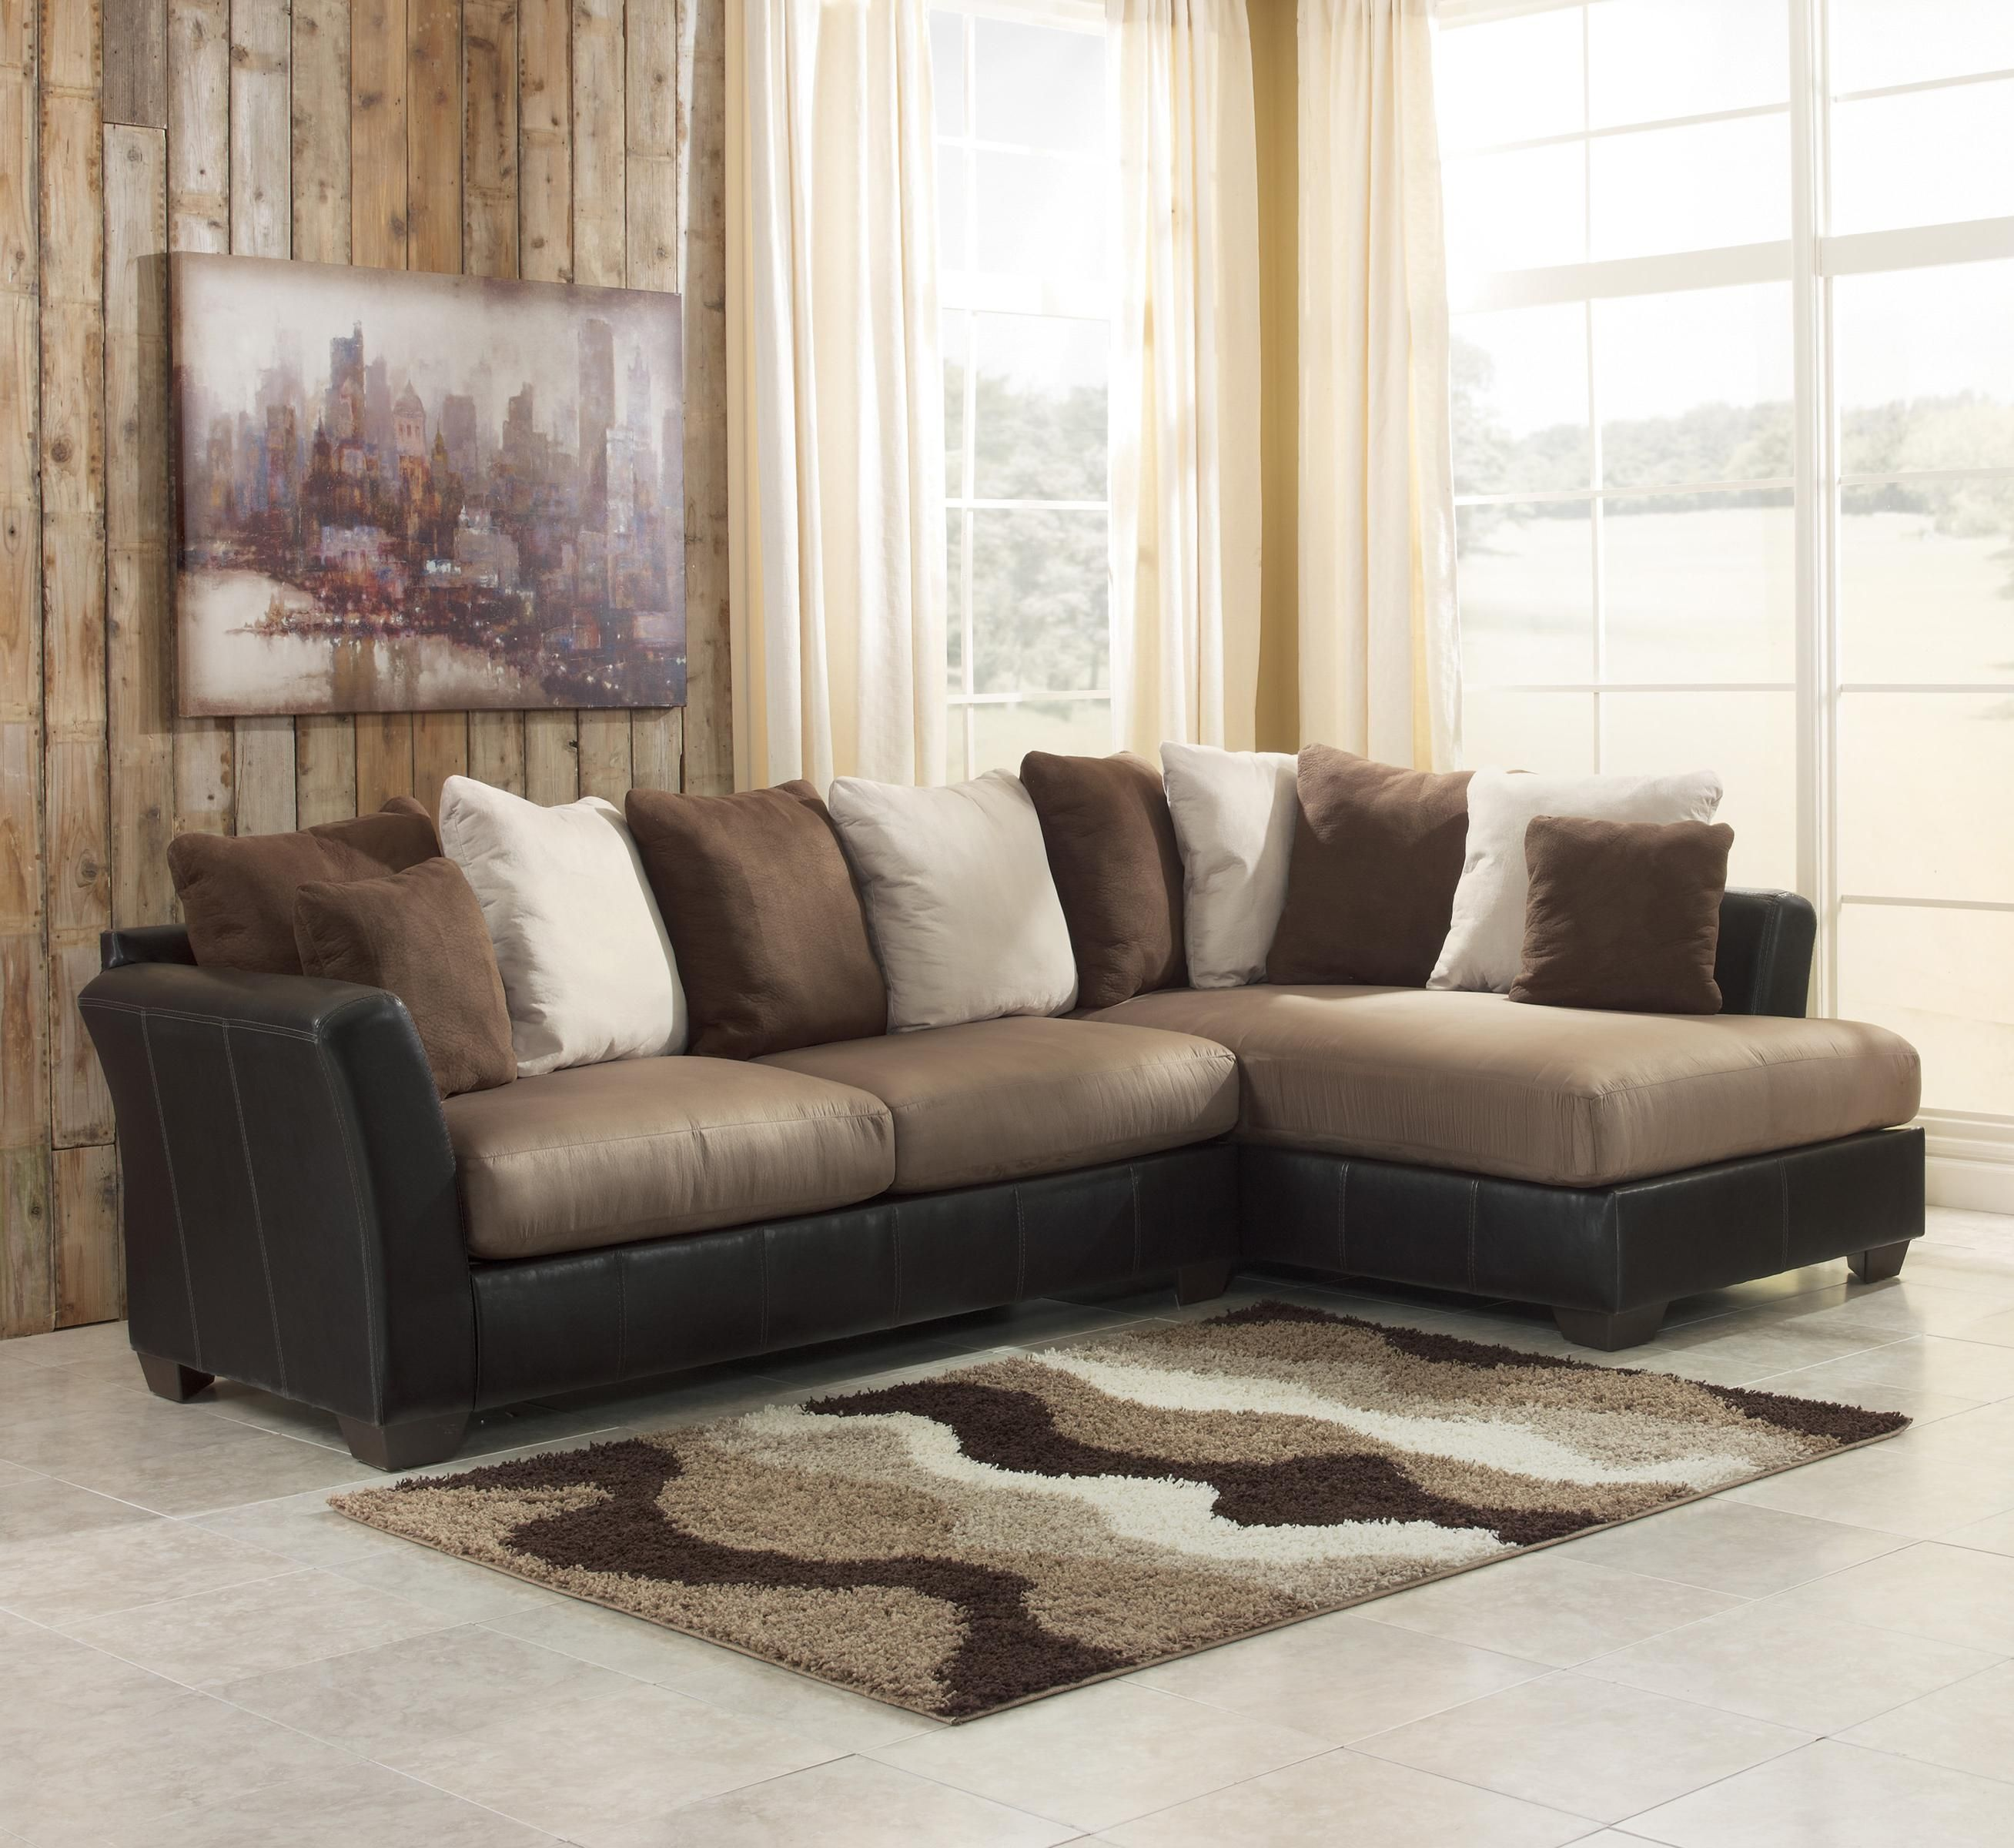 Martino Leather Chaise Sectional Sofa 2 Piece Http Ml2r Com